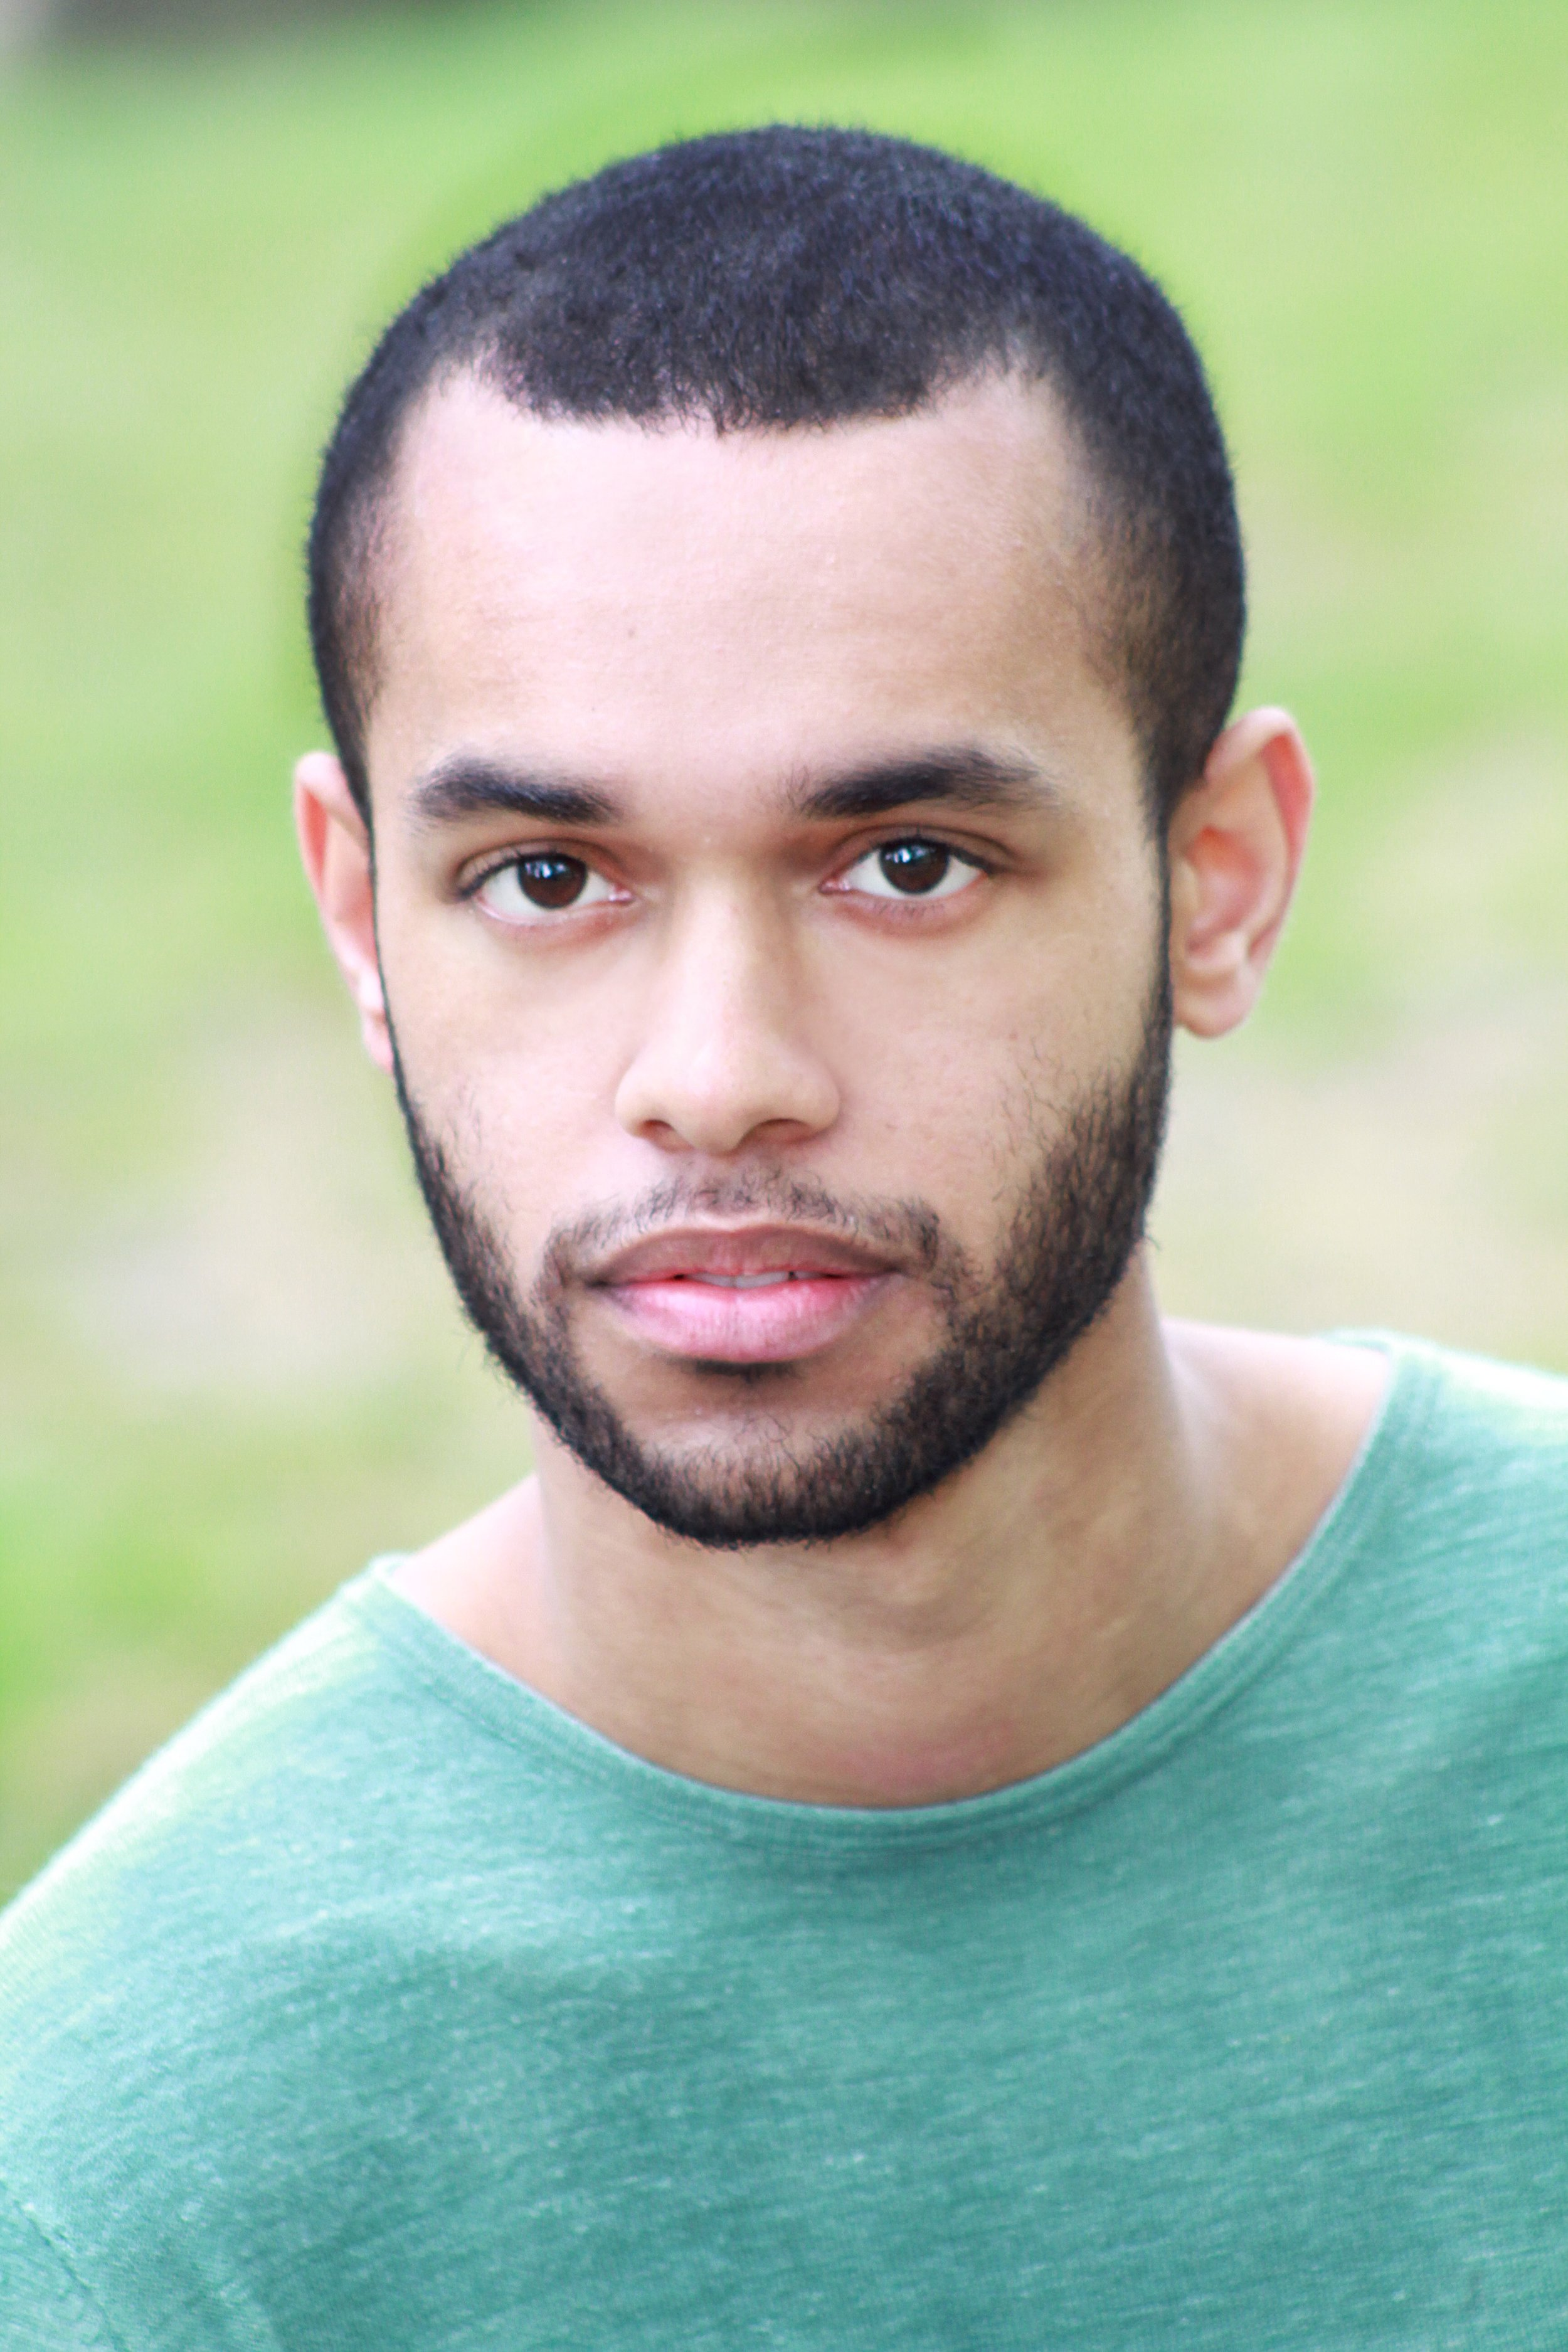 "Pascal Arquimedes - Pascal Arquimedes is a Dominican-American Actor who came to NYC in 2015. He obtained an AoS in Film and Television Performance at the New York Conservatory for Dramatic Arts. His works in Film include playing Josef King in ""Skin of the Teeth,"" directed by Matthew Wollin, which premiered at the Twin Cities Film Festival in October, and playing Reggie in ""Before I Let Go,"" directed by Daequan Collier. He's very grateful for the opportunity to work on this project and can't wait for this story to be shown!"